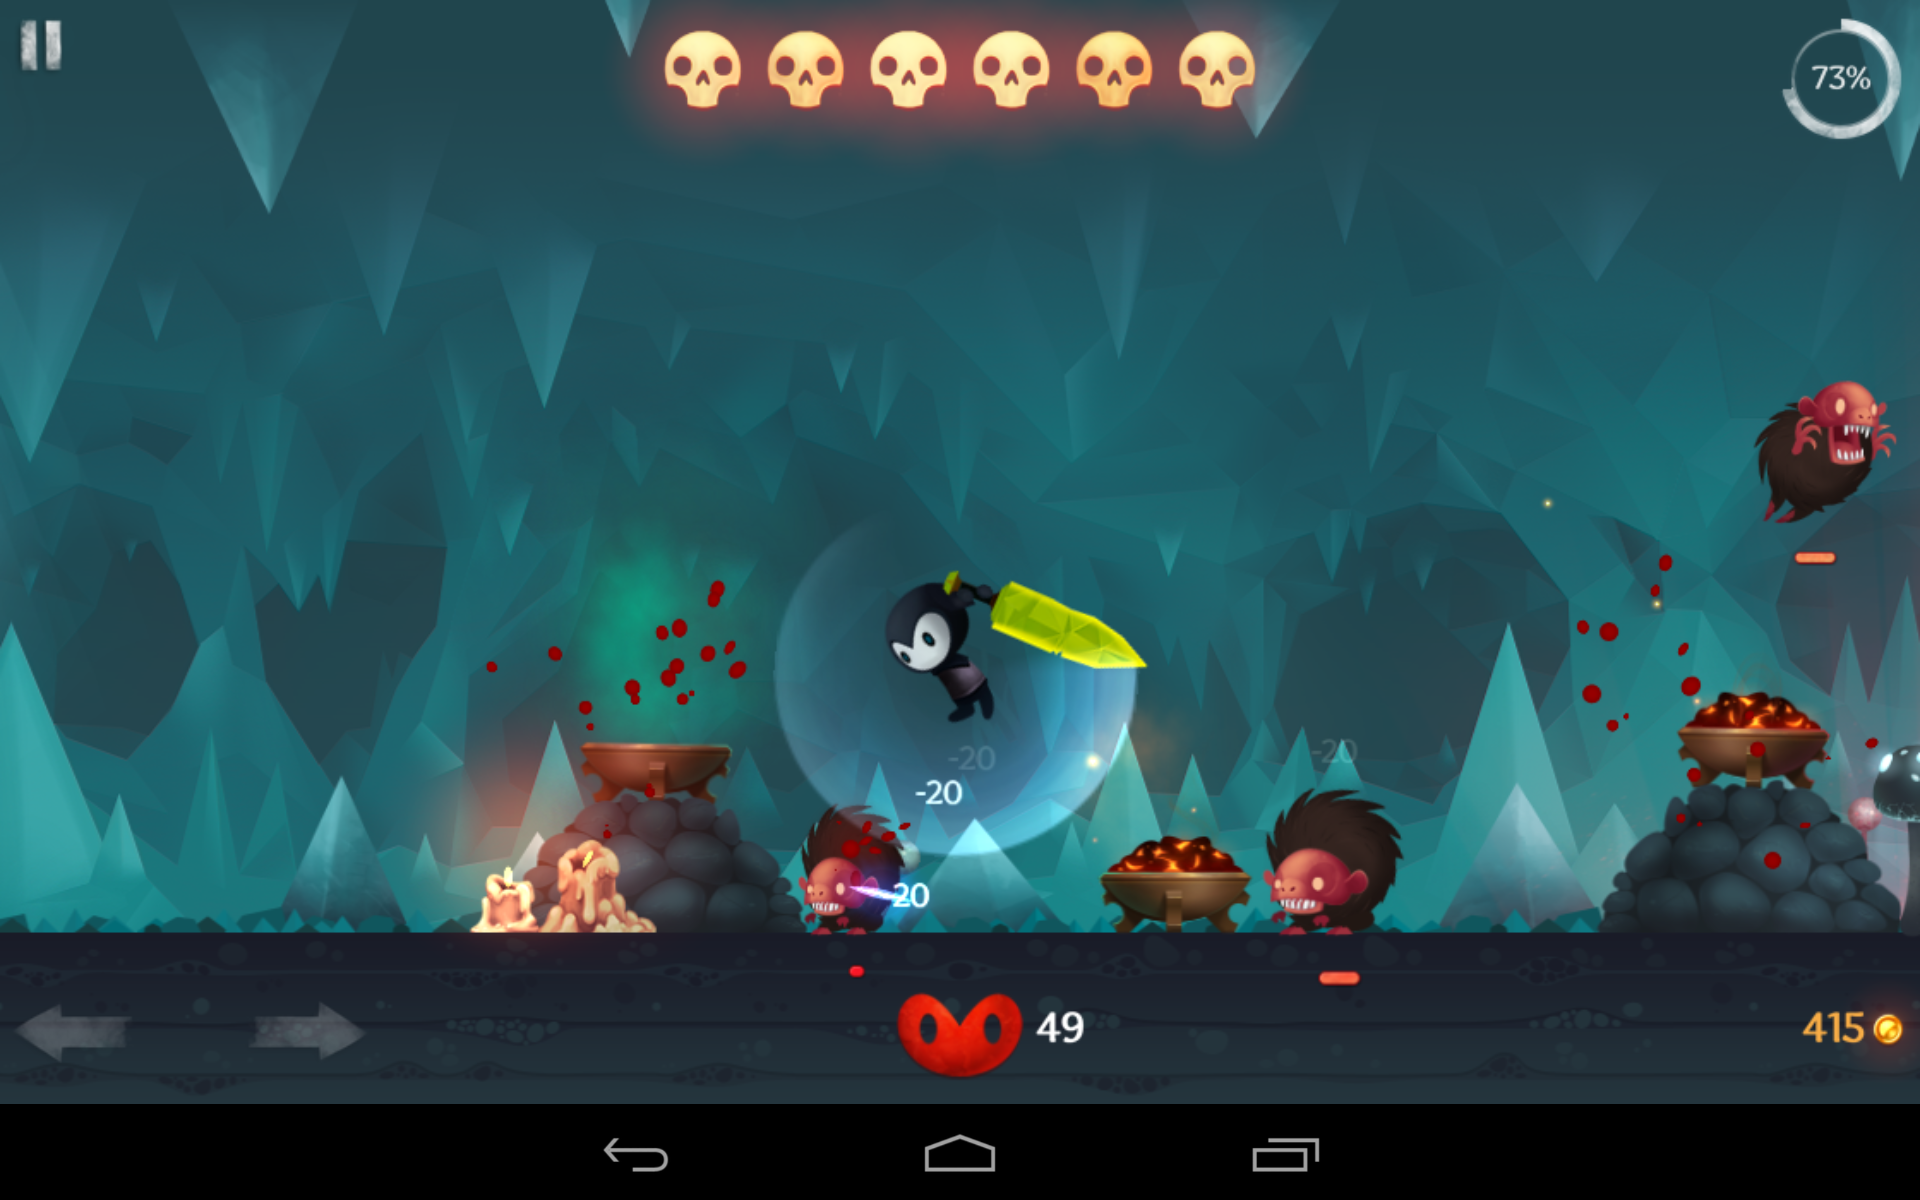 Reaper Review An Rpg That Truly Understands Mobile Gaming